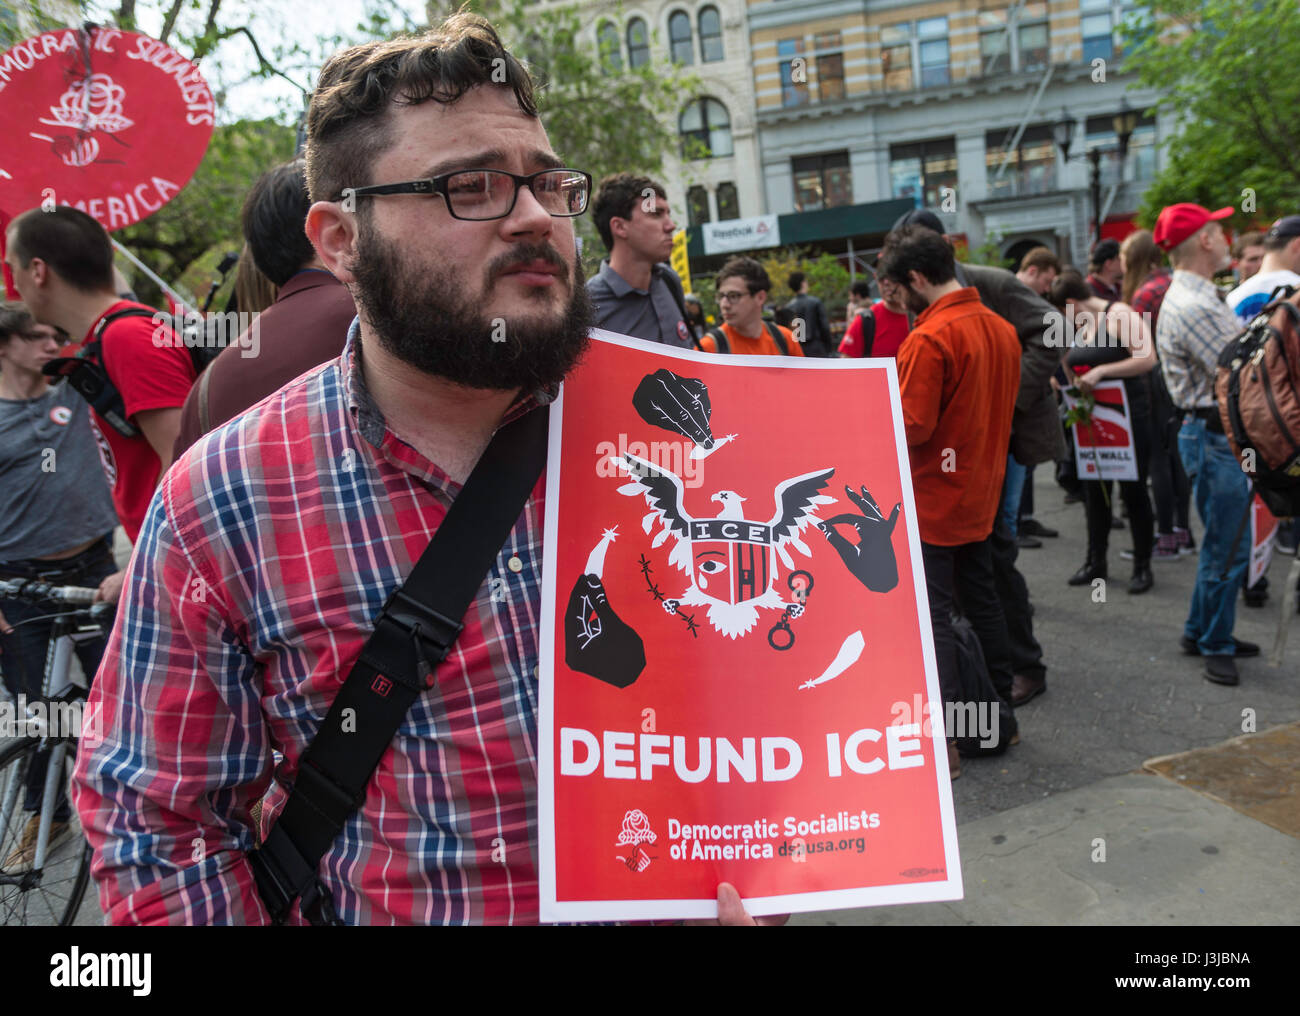 New York, NY 1 May 2017 - Protester with a sign to defund ICE (Immigration and Customs Enforcement) Democratic Socialists - Stock Image